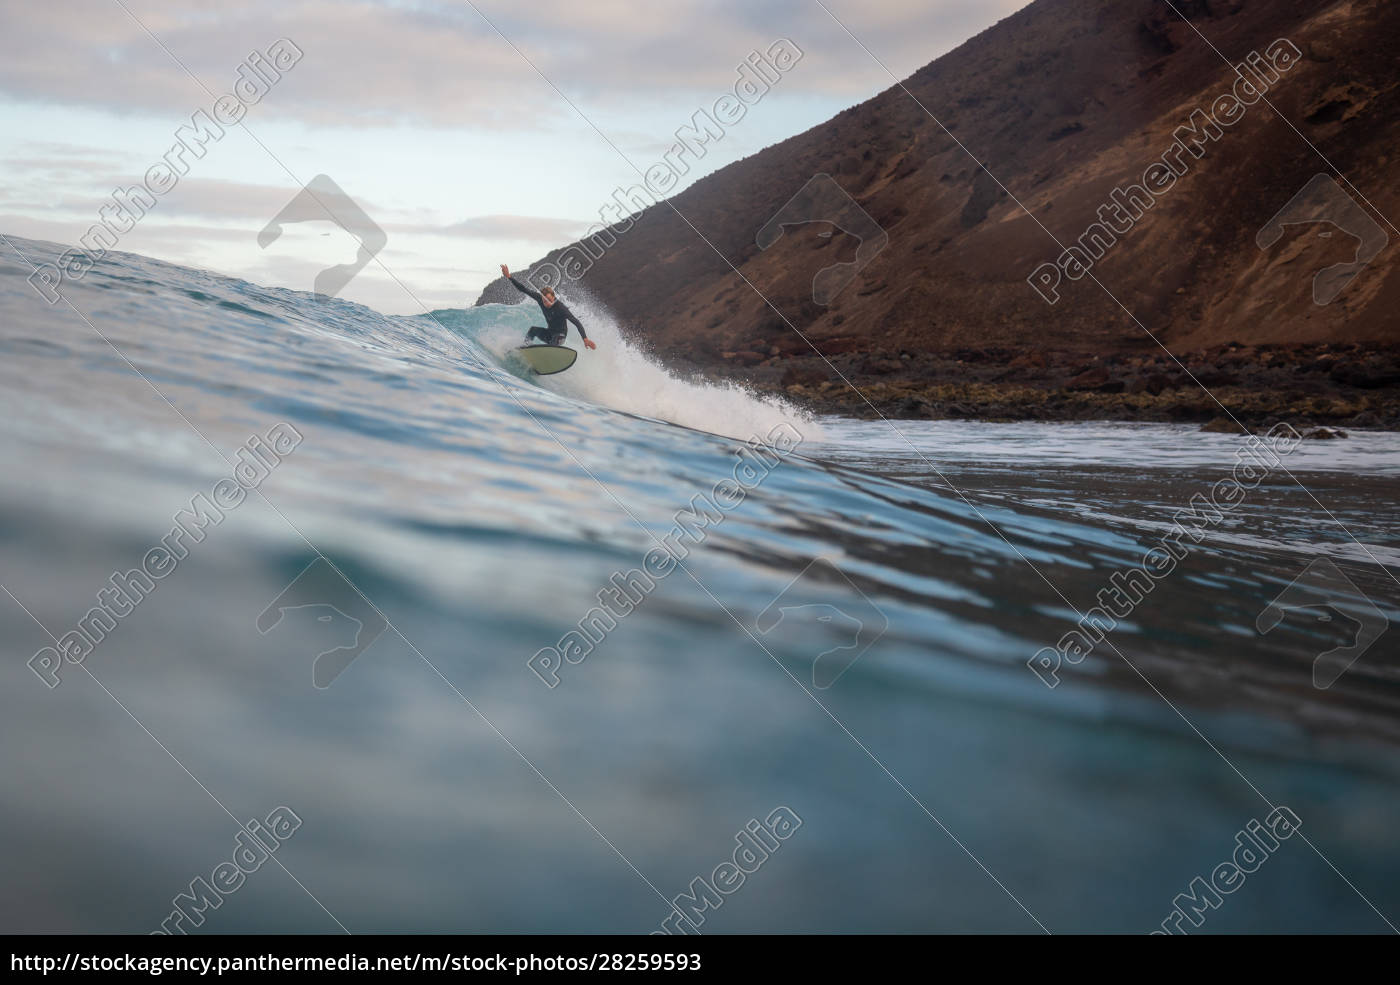 surfer, riding, waves, on, the, island - 28259593